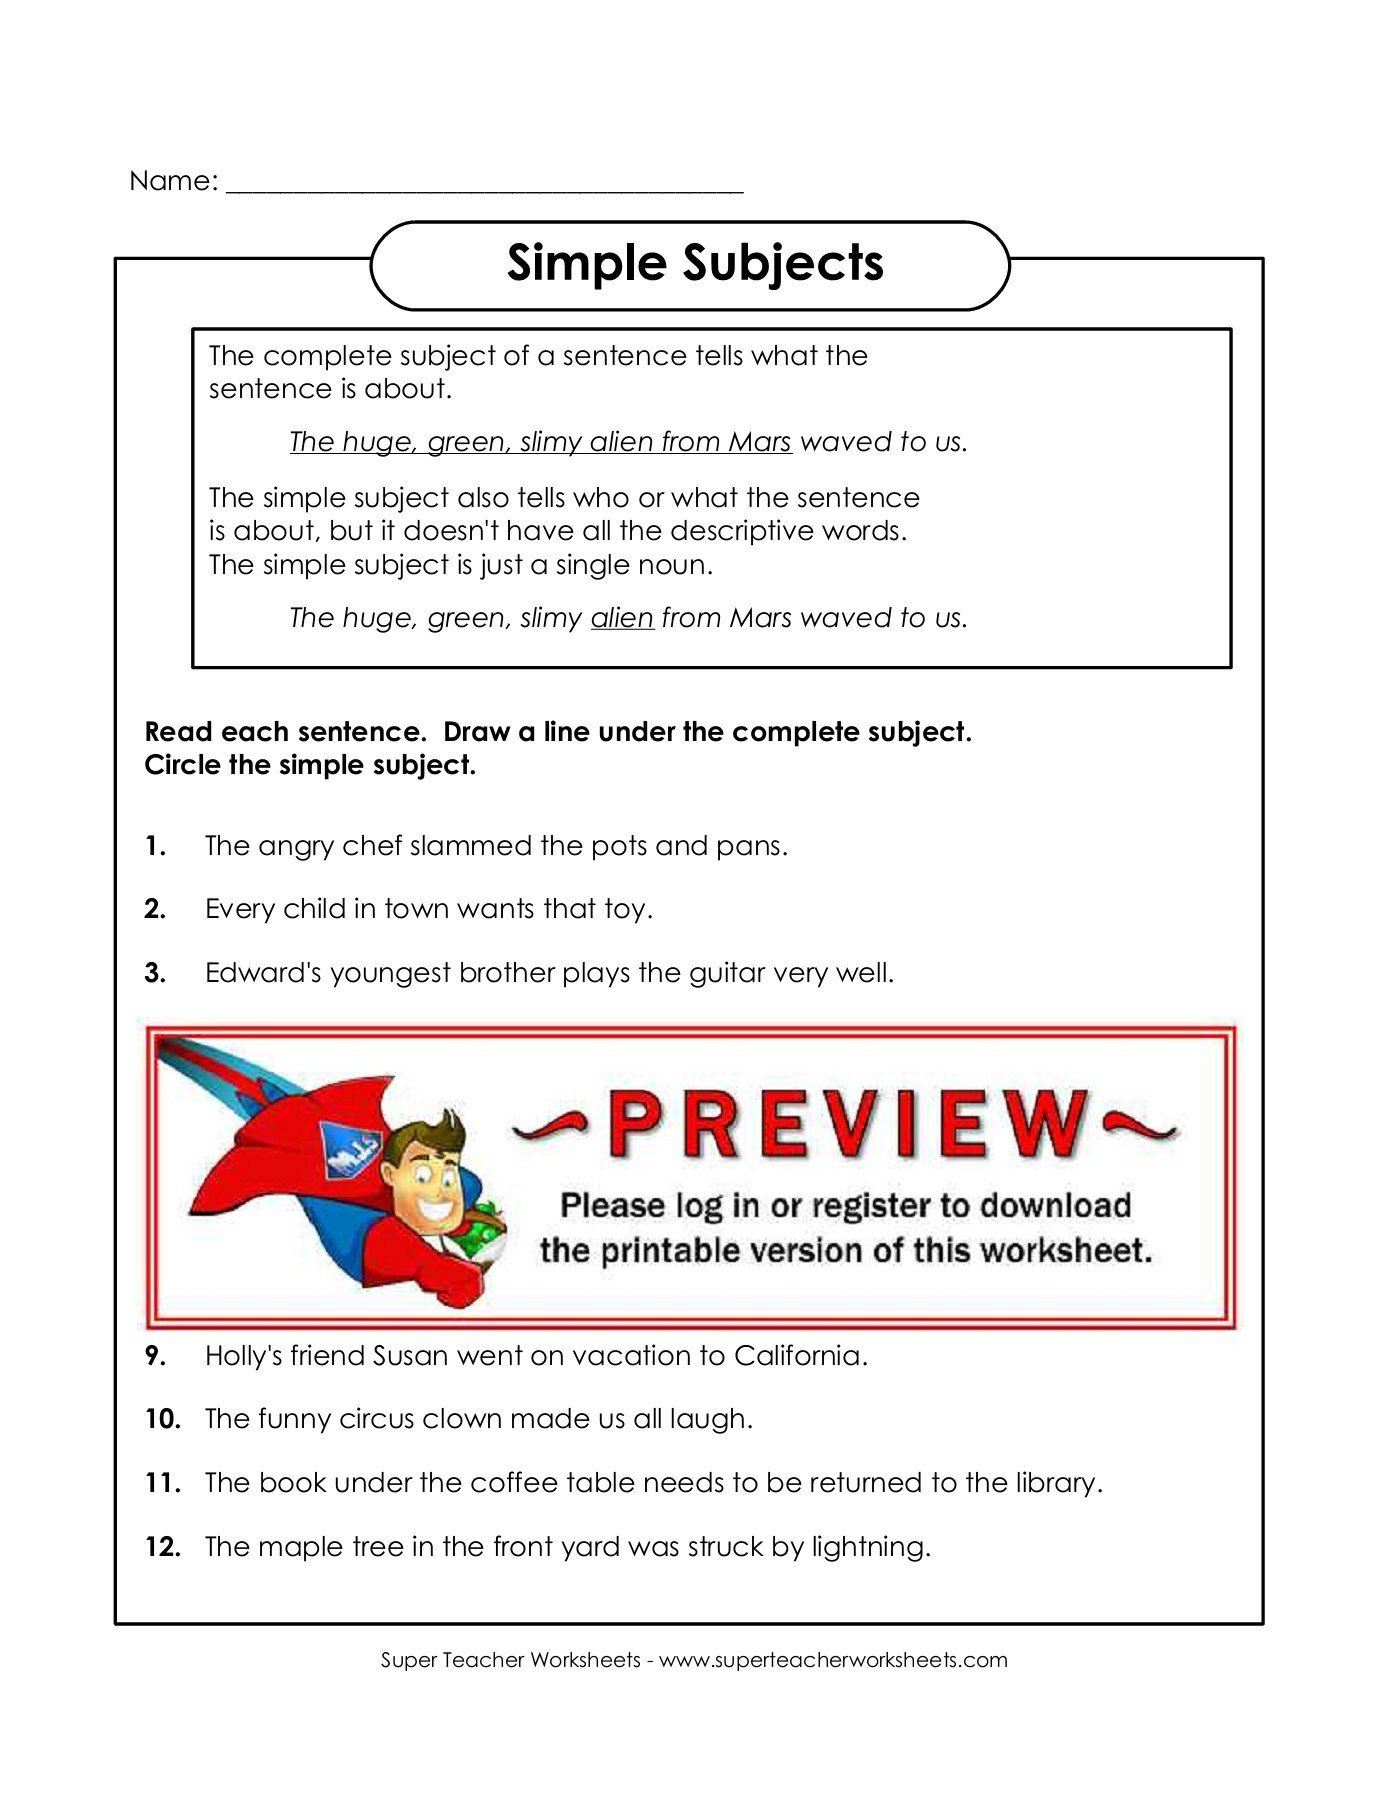 Superteacher Worksheets Login Simple Subjects Super Teacher Worksheets